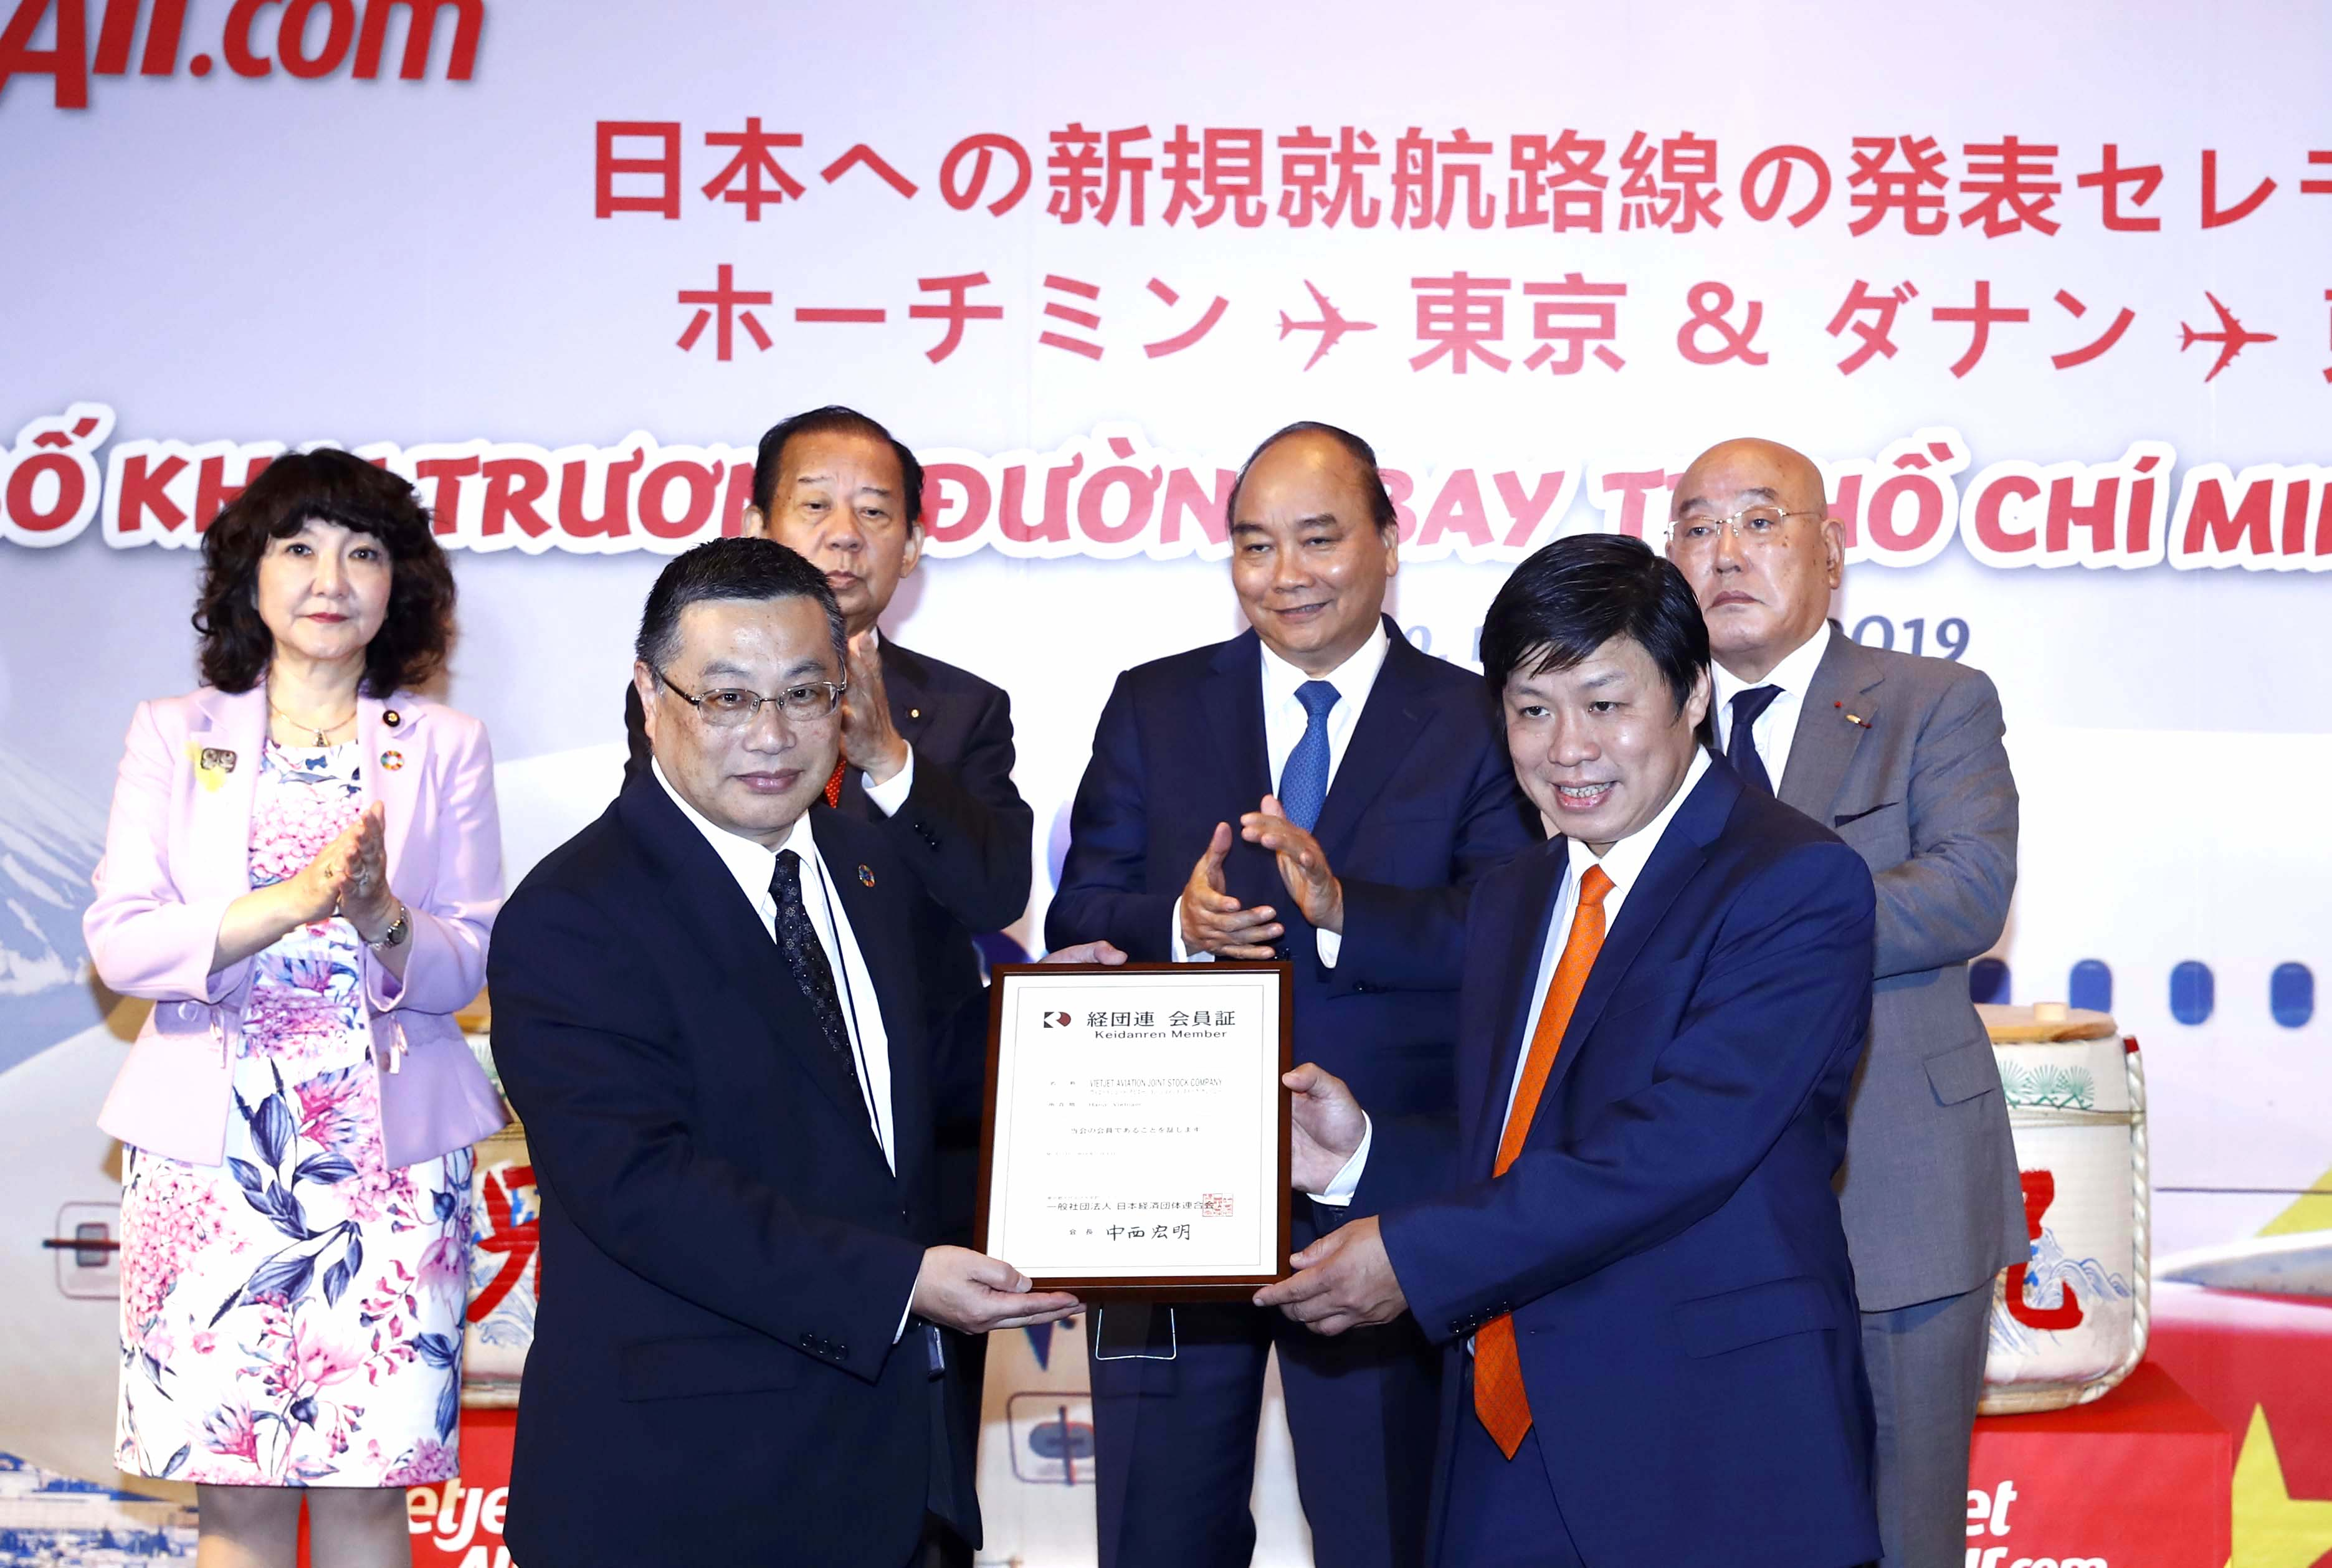 Vietjet launches new Japan services as carrier admitted to Japan Business Federation